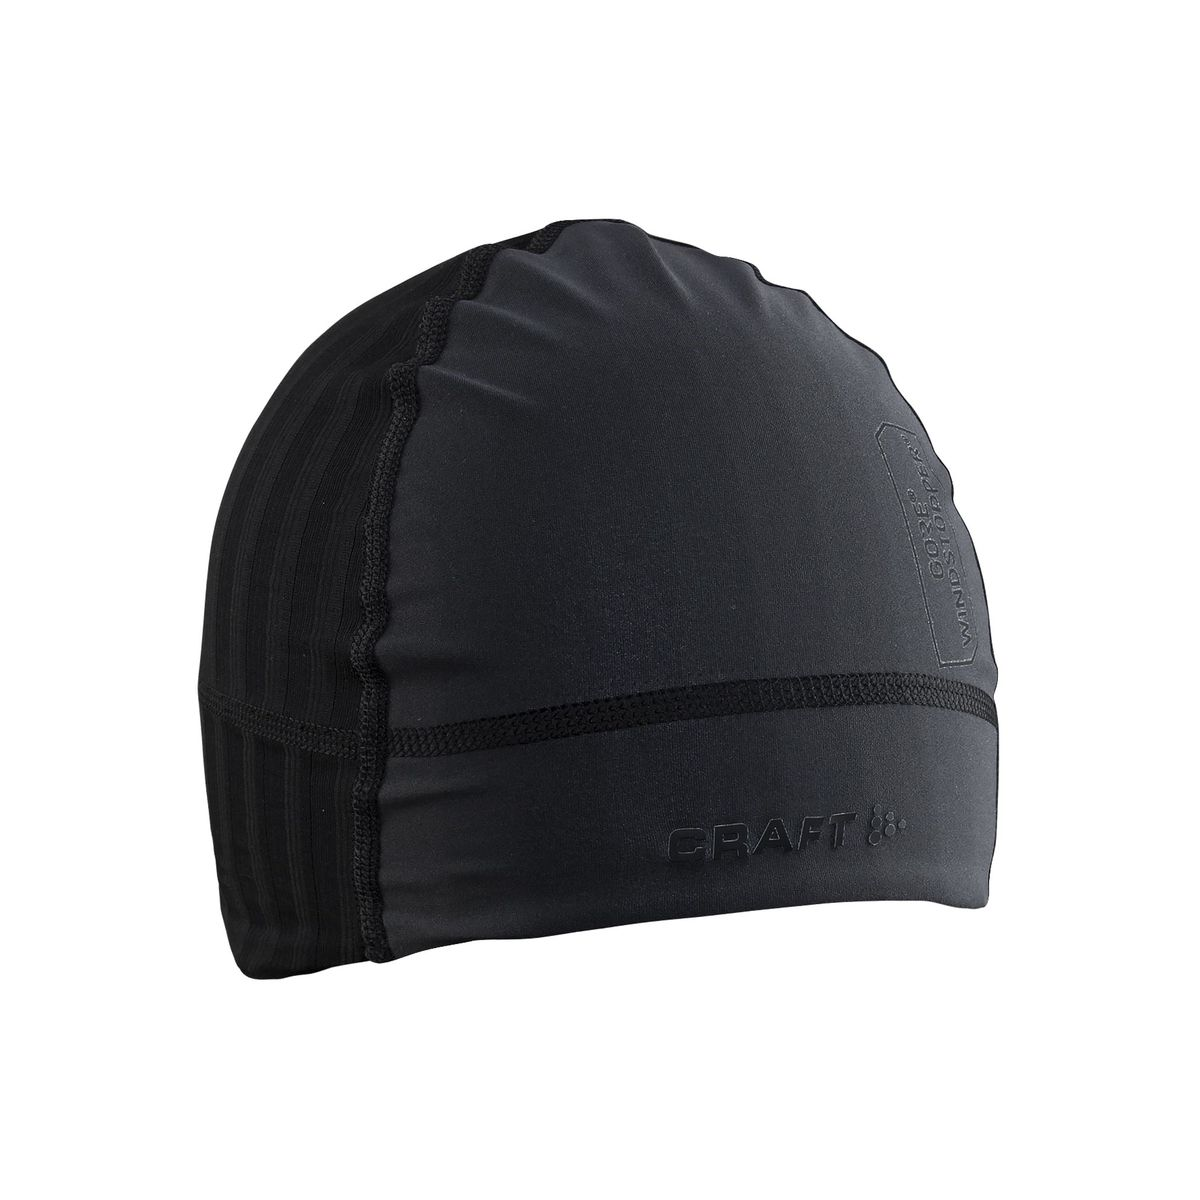 ACTIVE EXTREME 2.0 GORE WINDSTOPPER hat